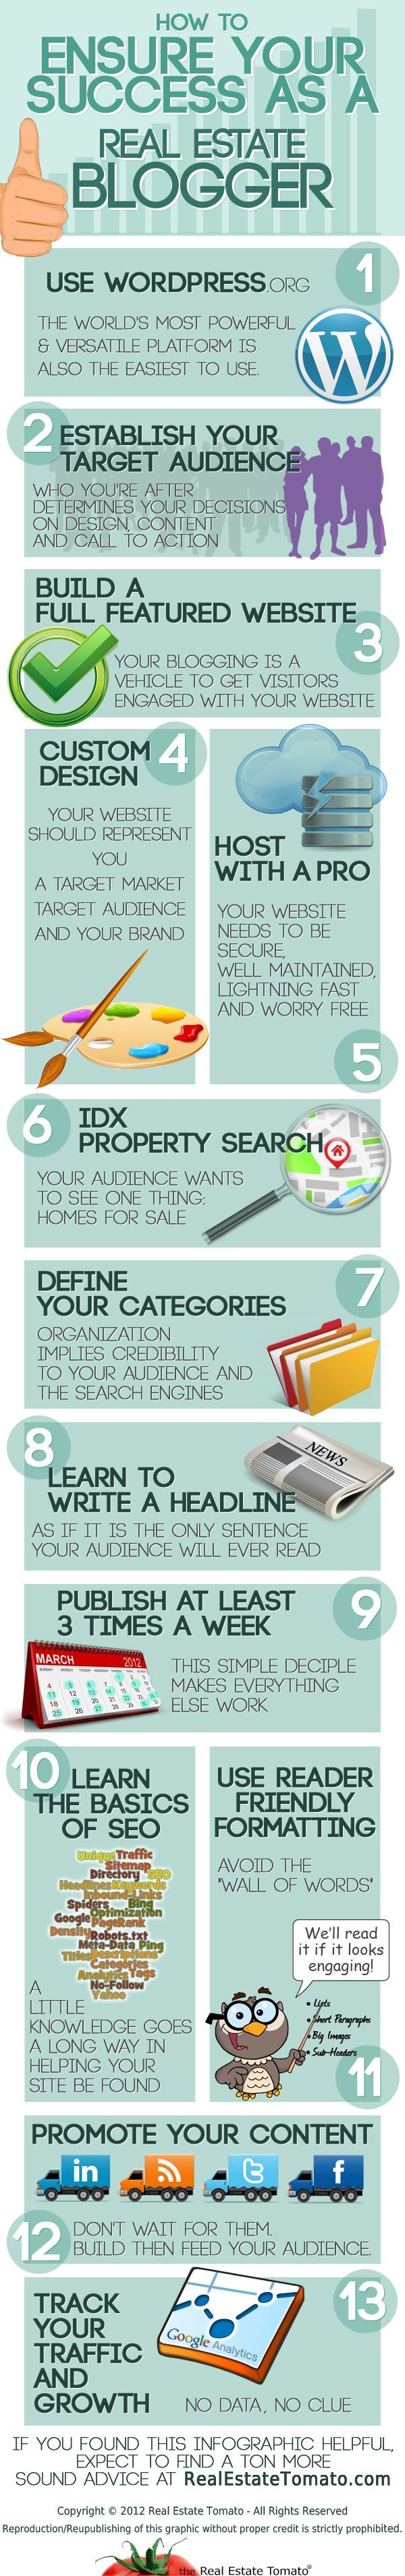 How To Ensure Your Success As A #RealEstate #Blogger